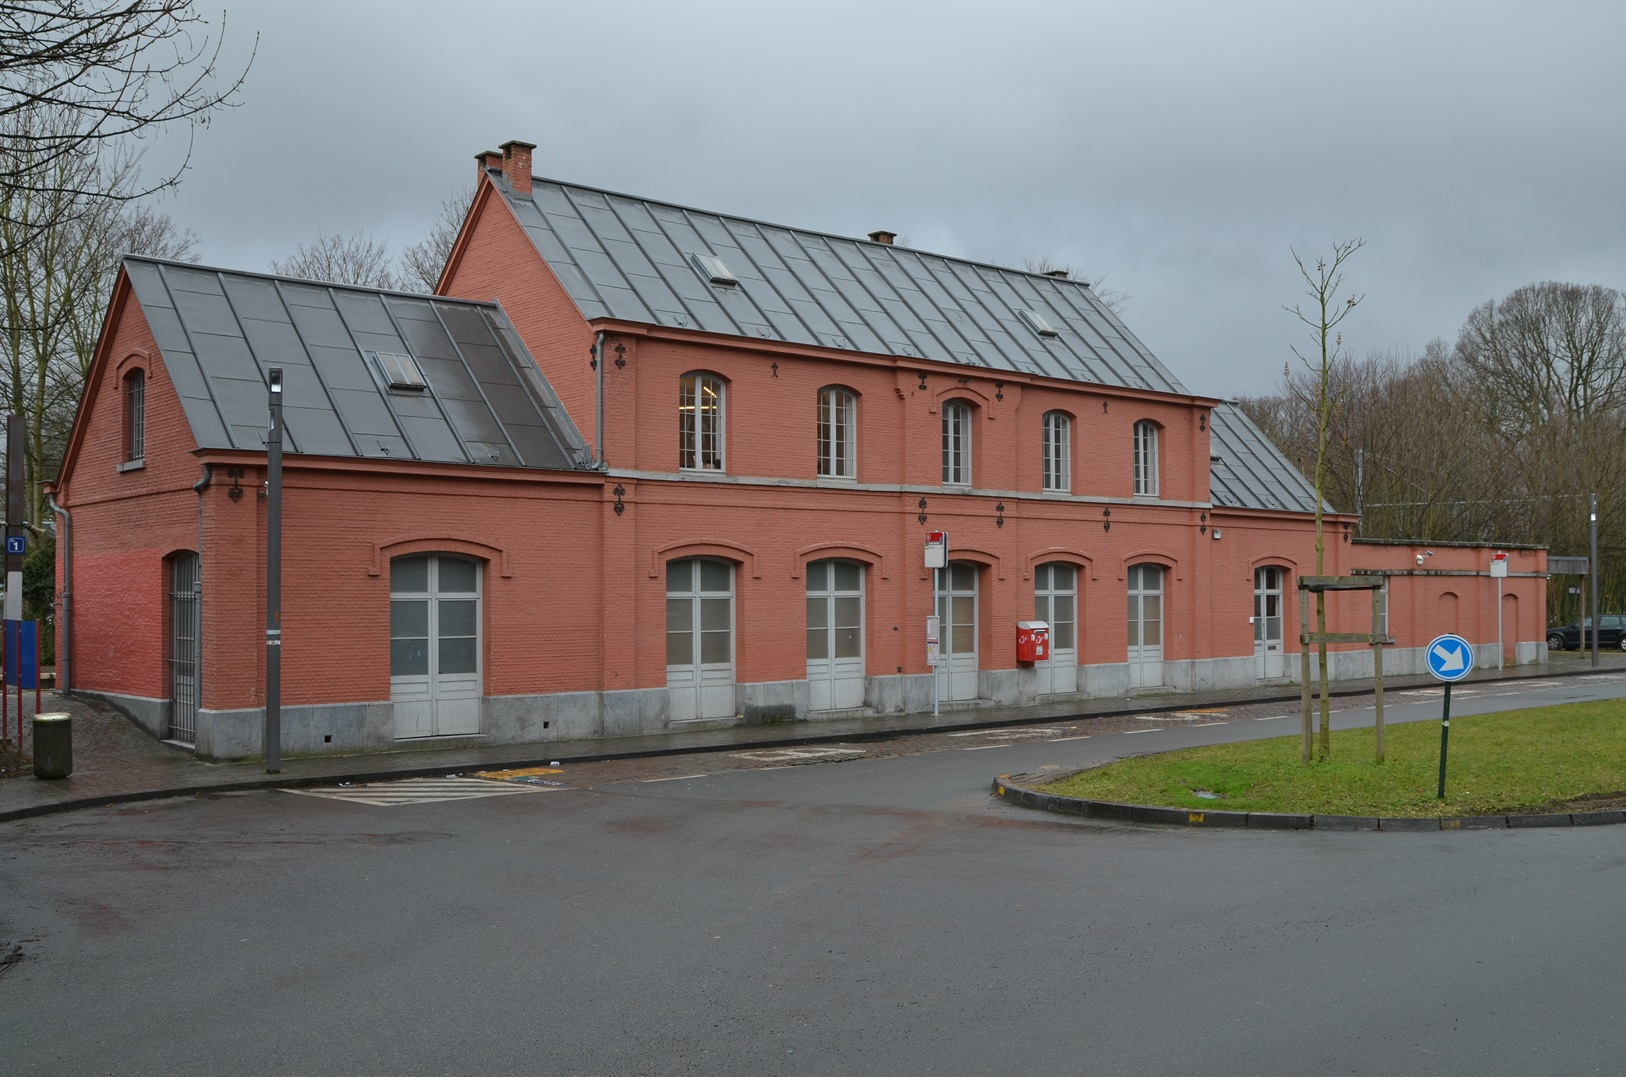 Gare d'Uccle-Stalle